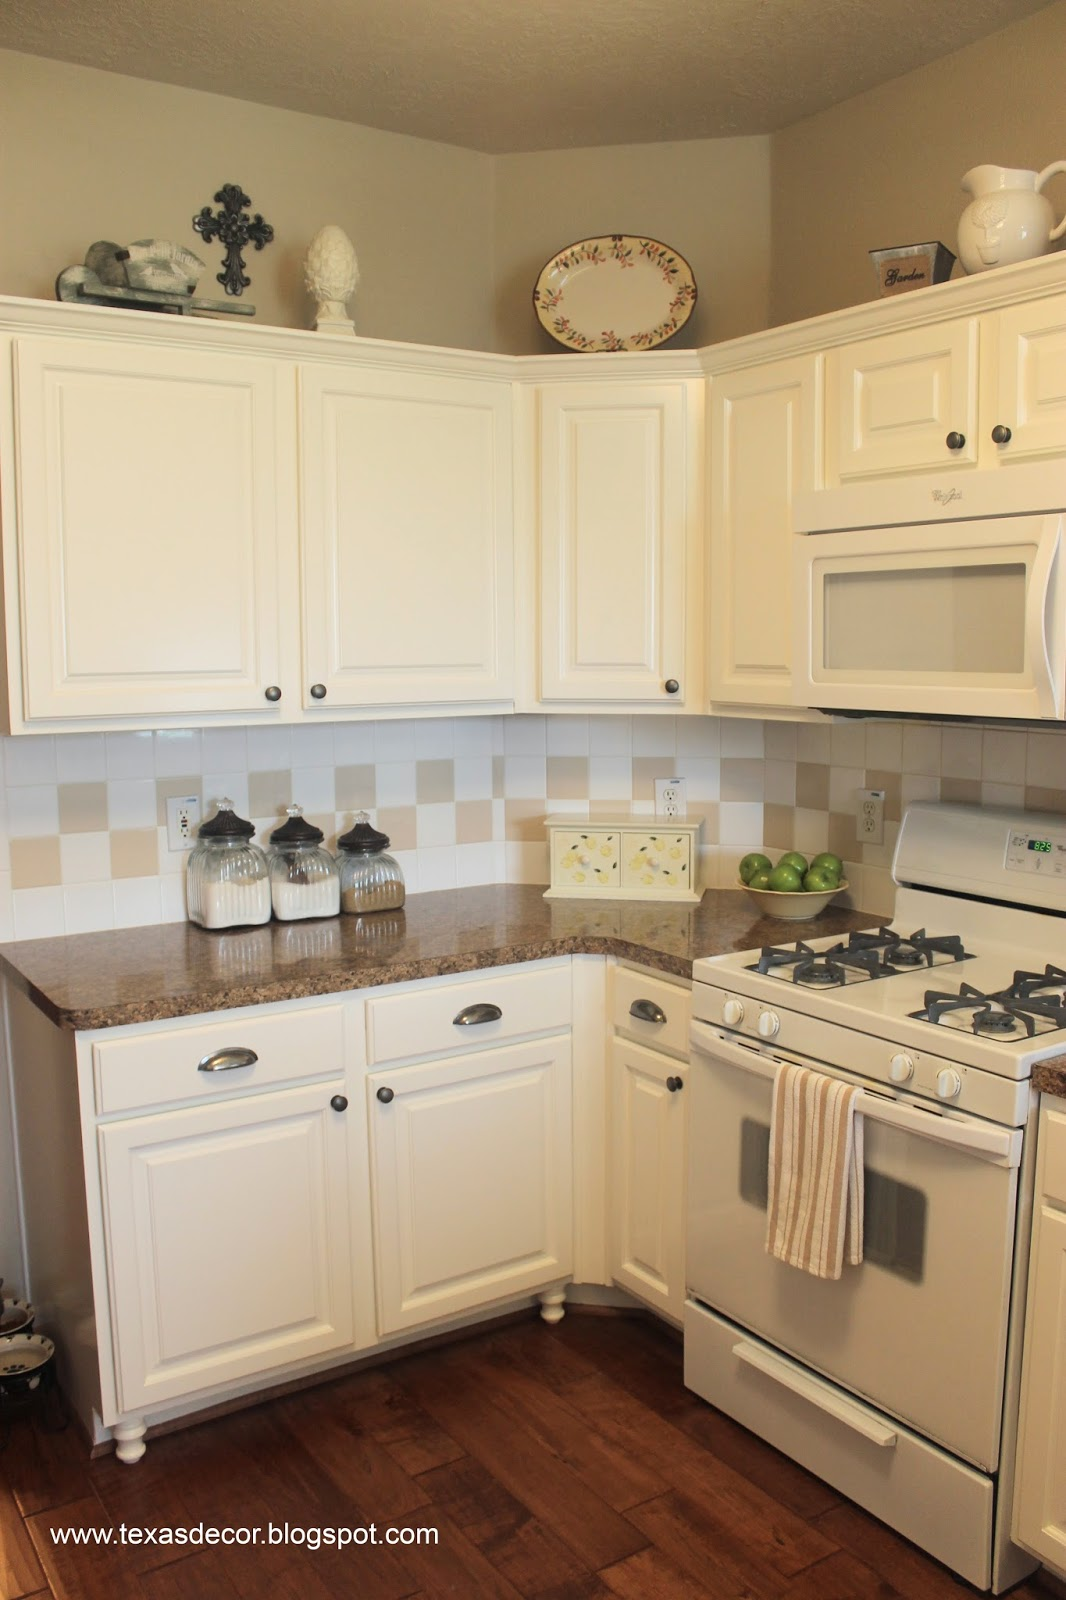 to cabinet cabinets backsplash tops blue grade how painted gray counter builder kitchen oak of white diy paint